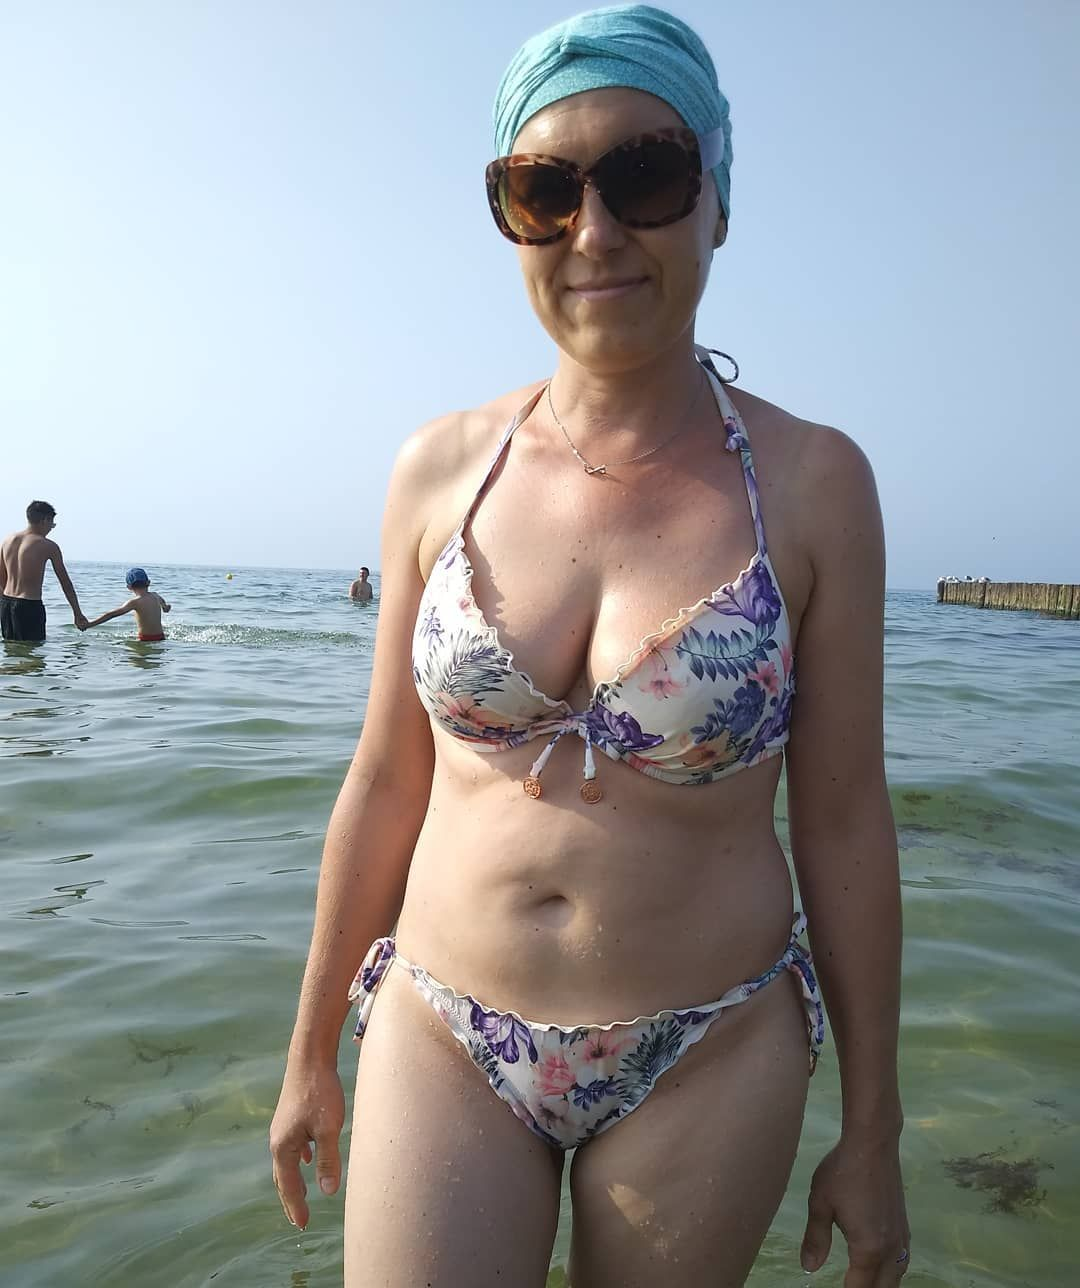 Post your mature wife pics casually